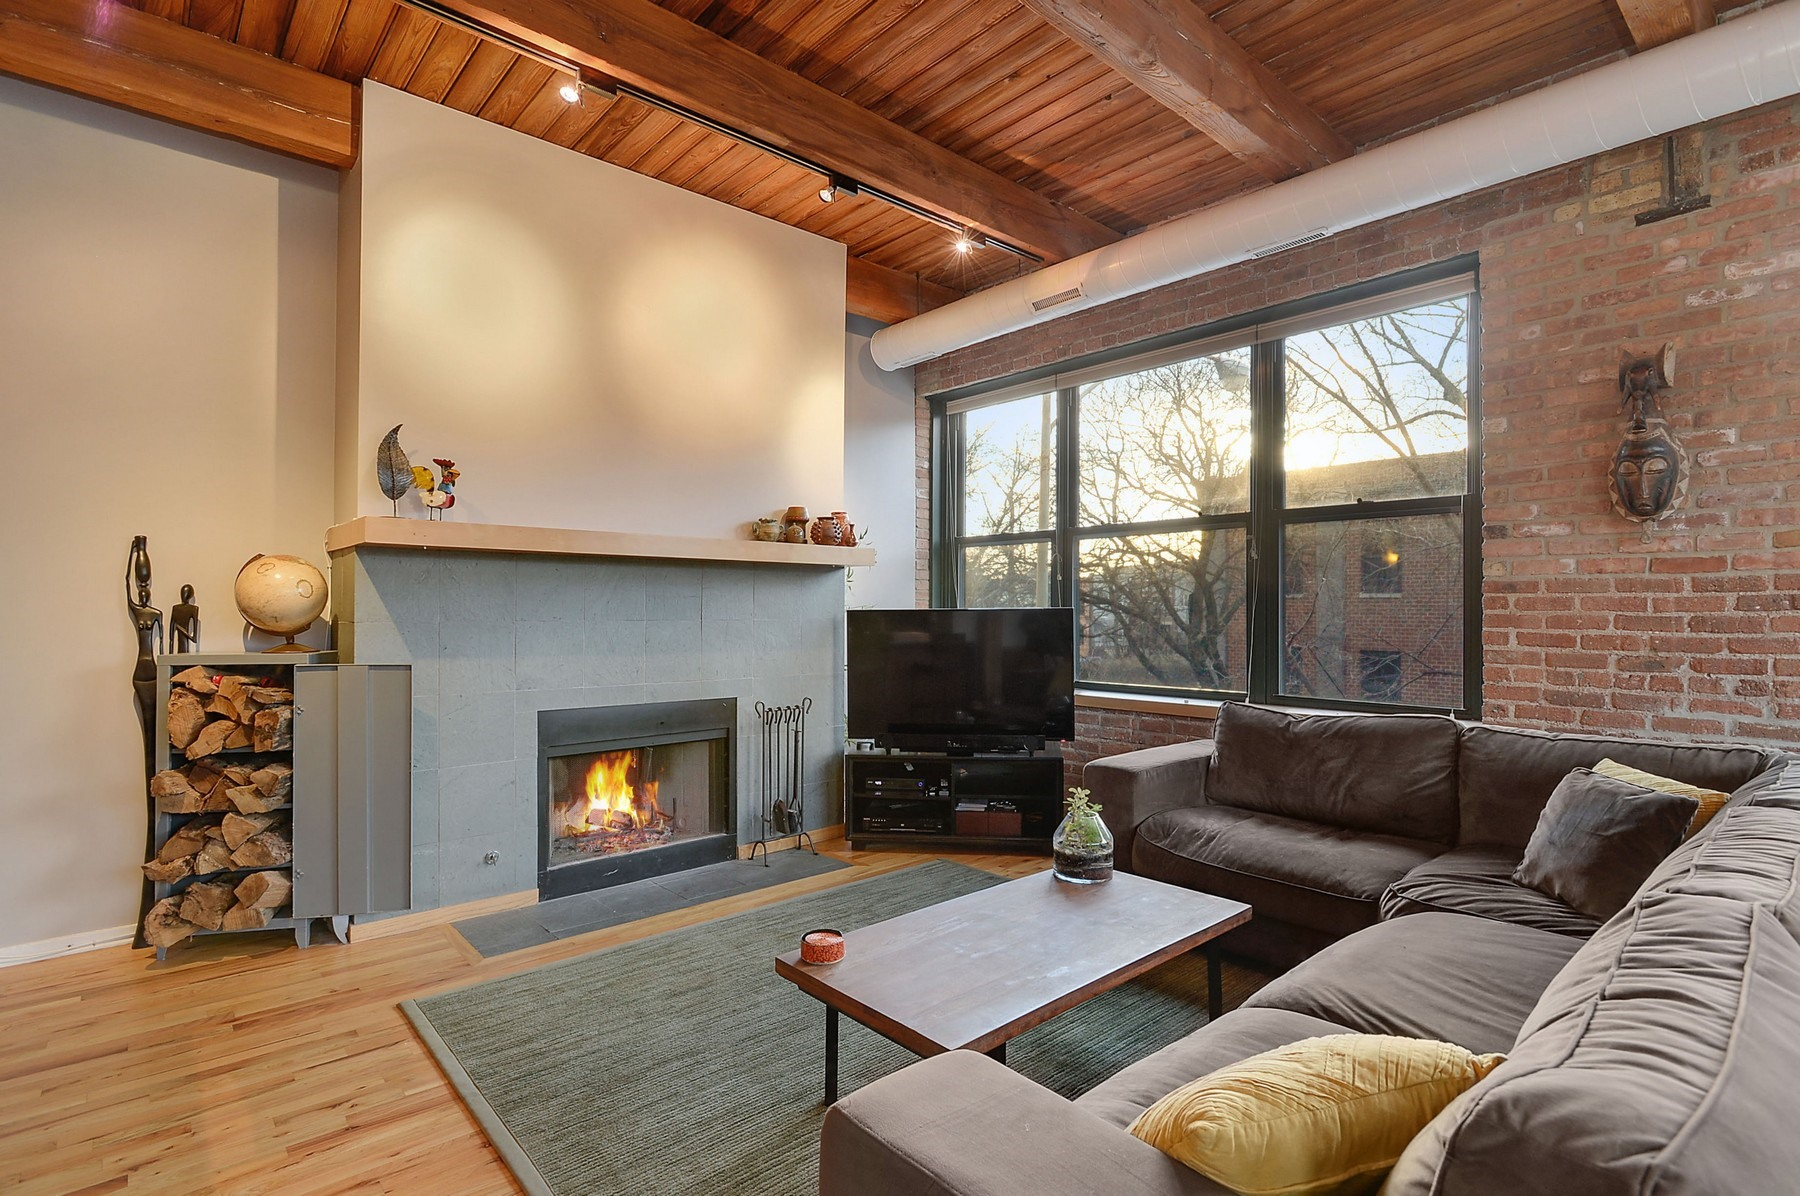 Single Family Home for Sale at Unit Available in BEST Loft Building in Chicago 2250 W Ohio Street Unit 205 West Town, Chicago, Illinois, 60612 United States